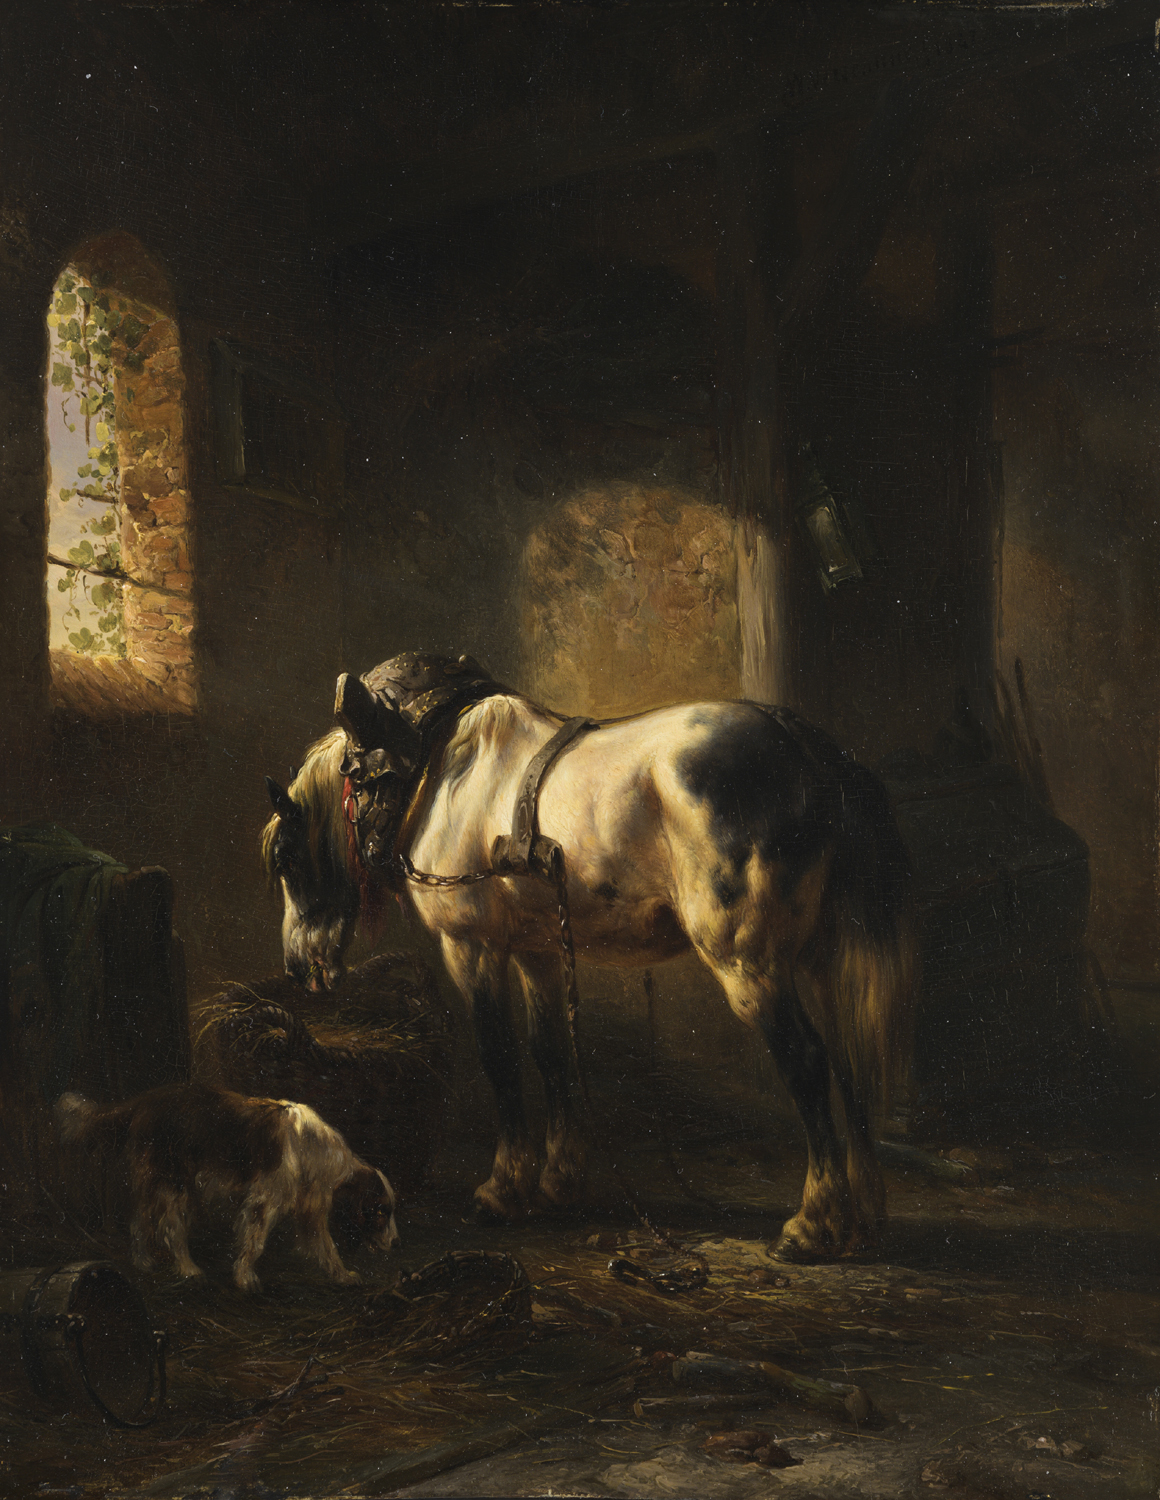 Wouterus Verschuur | A stable interior with a grey horse and a dog | Kunsthandel Bies | Bies Gallery